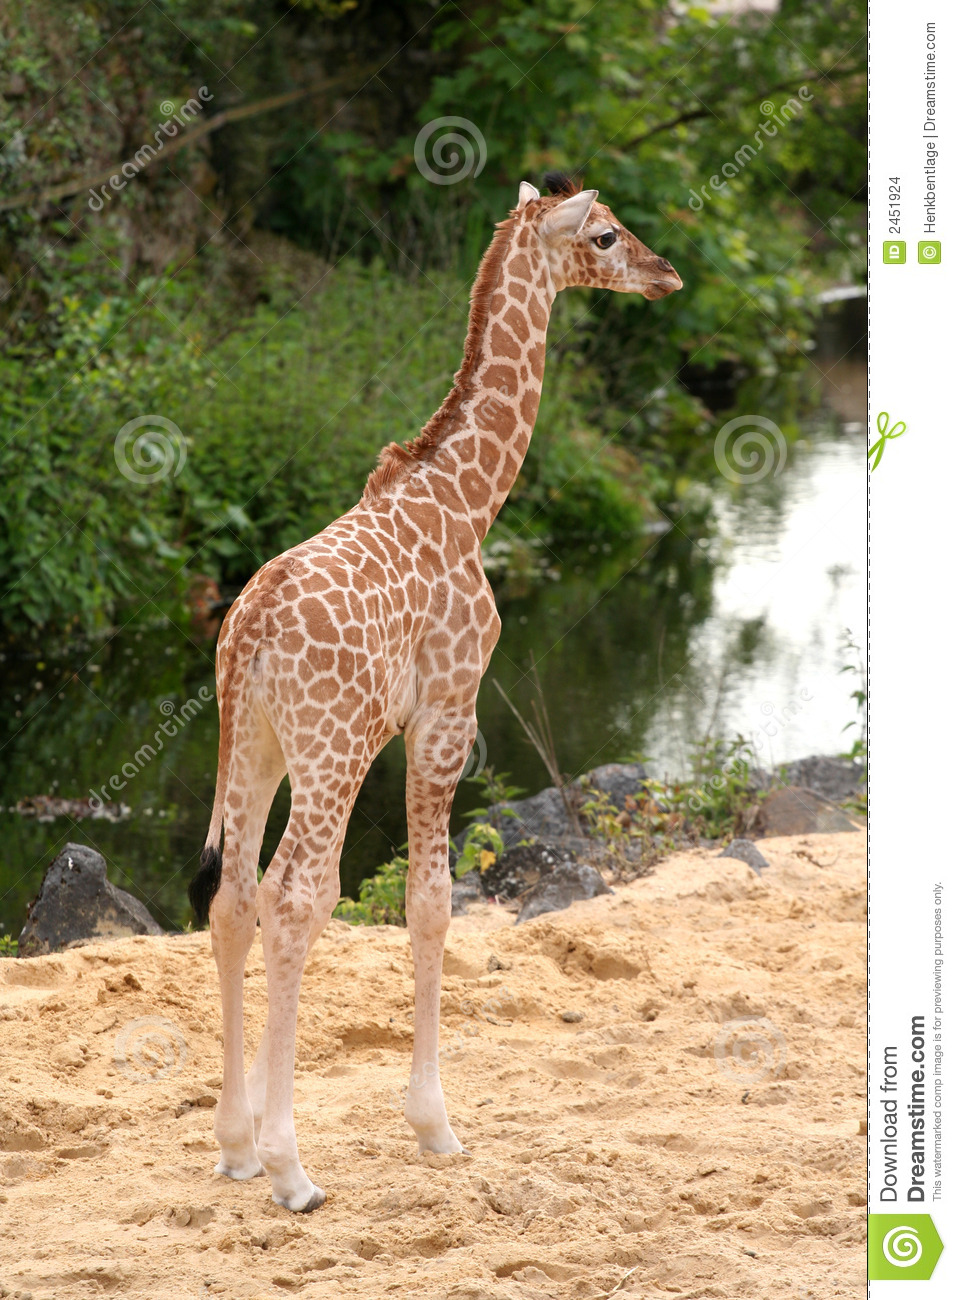 Cute Little Baby Giraffe Stock Images - Image: 2451924